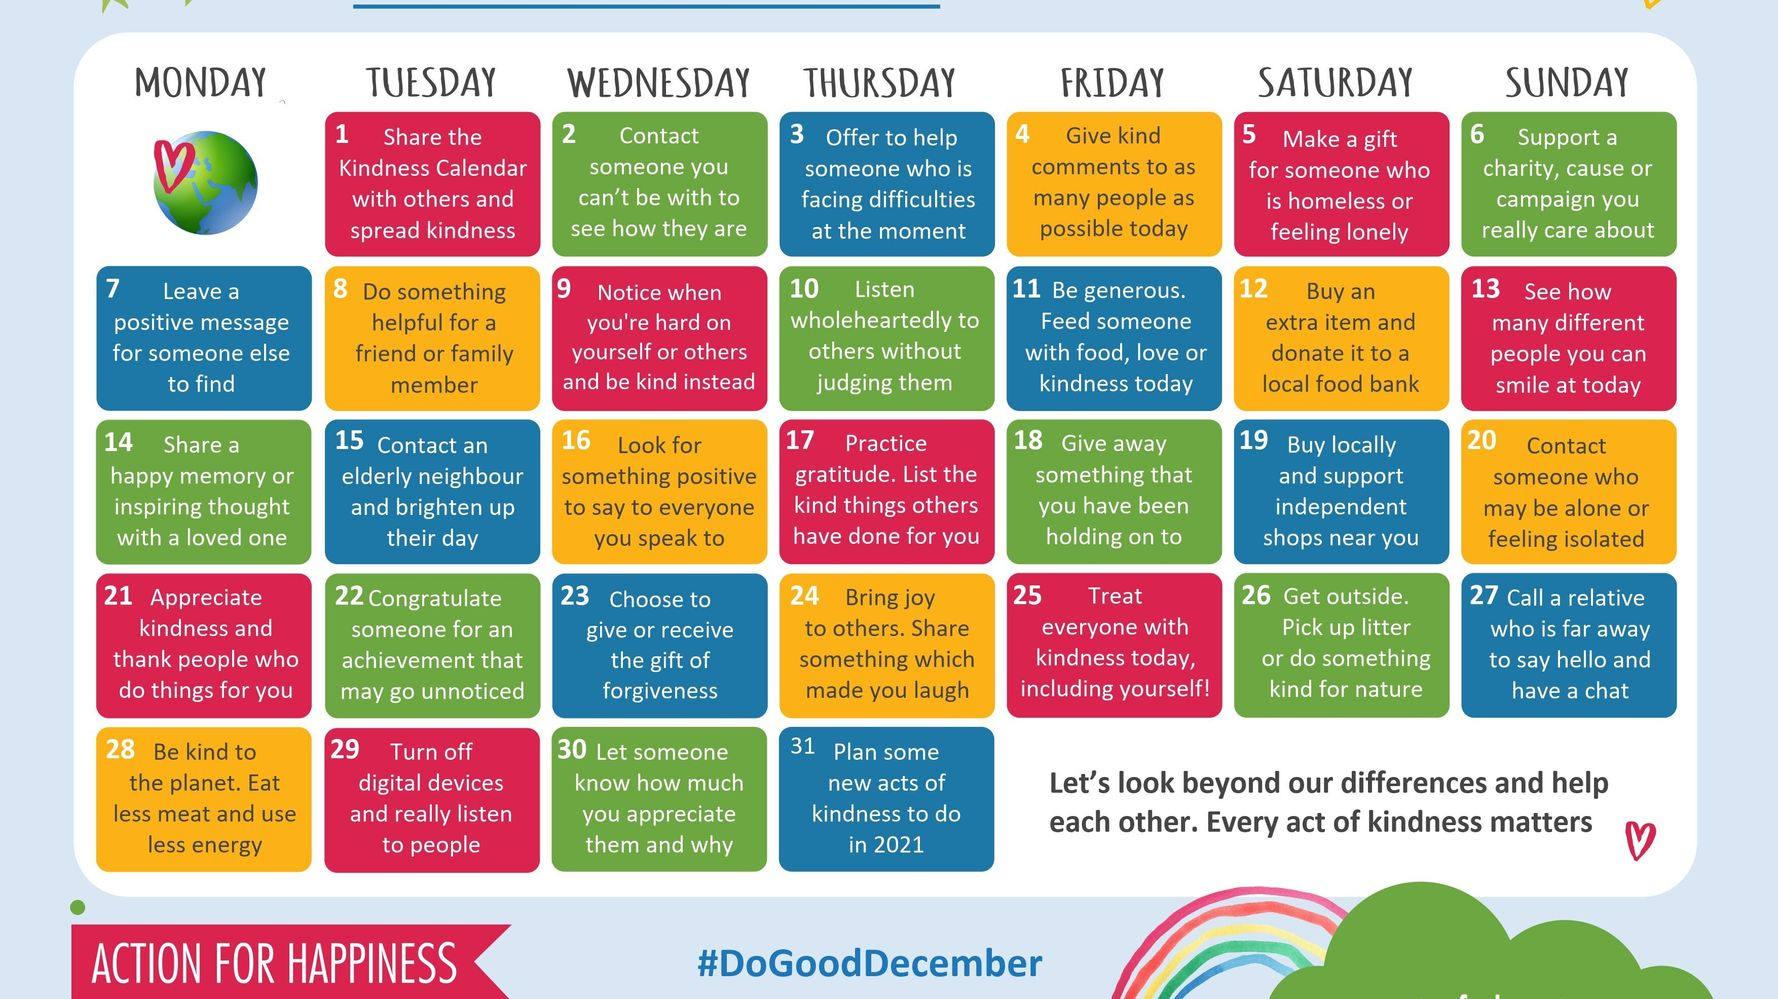 Count Down The Days To Christmas With This Kindness Calendar